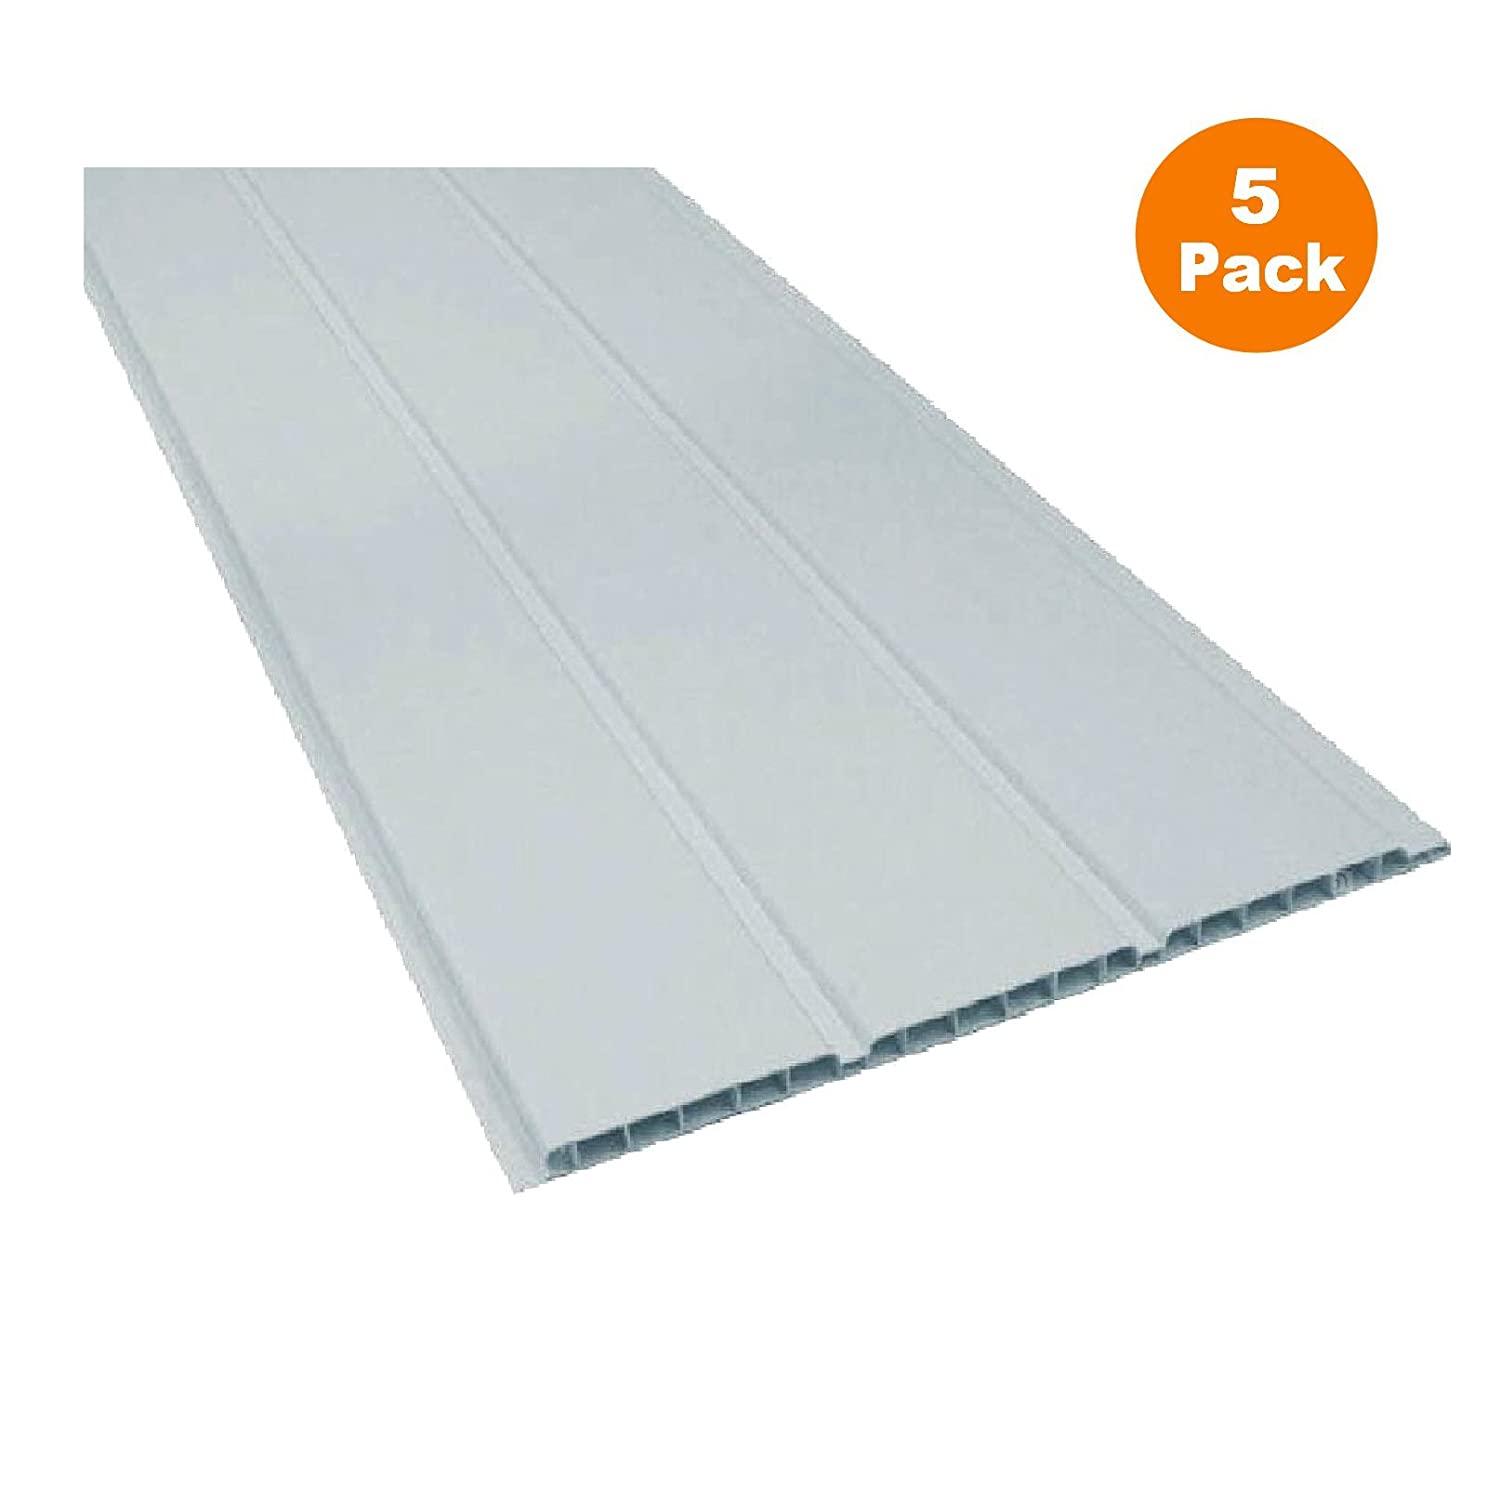 5 x 2.5m Length x 300mm UPVC Plastic White Hollow Ceiling & Wall Cladding Home Smart